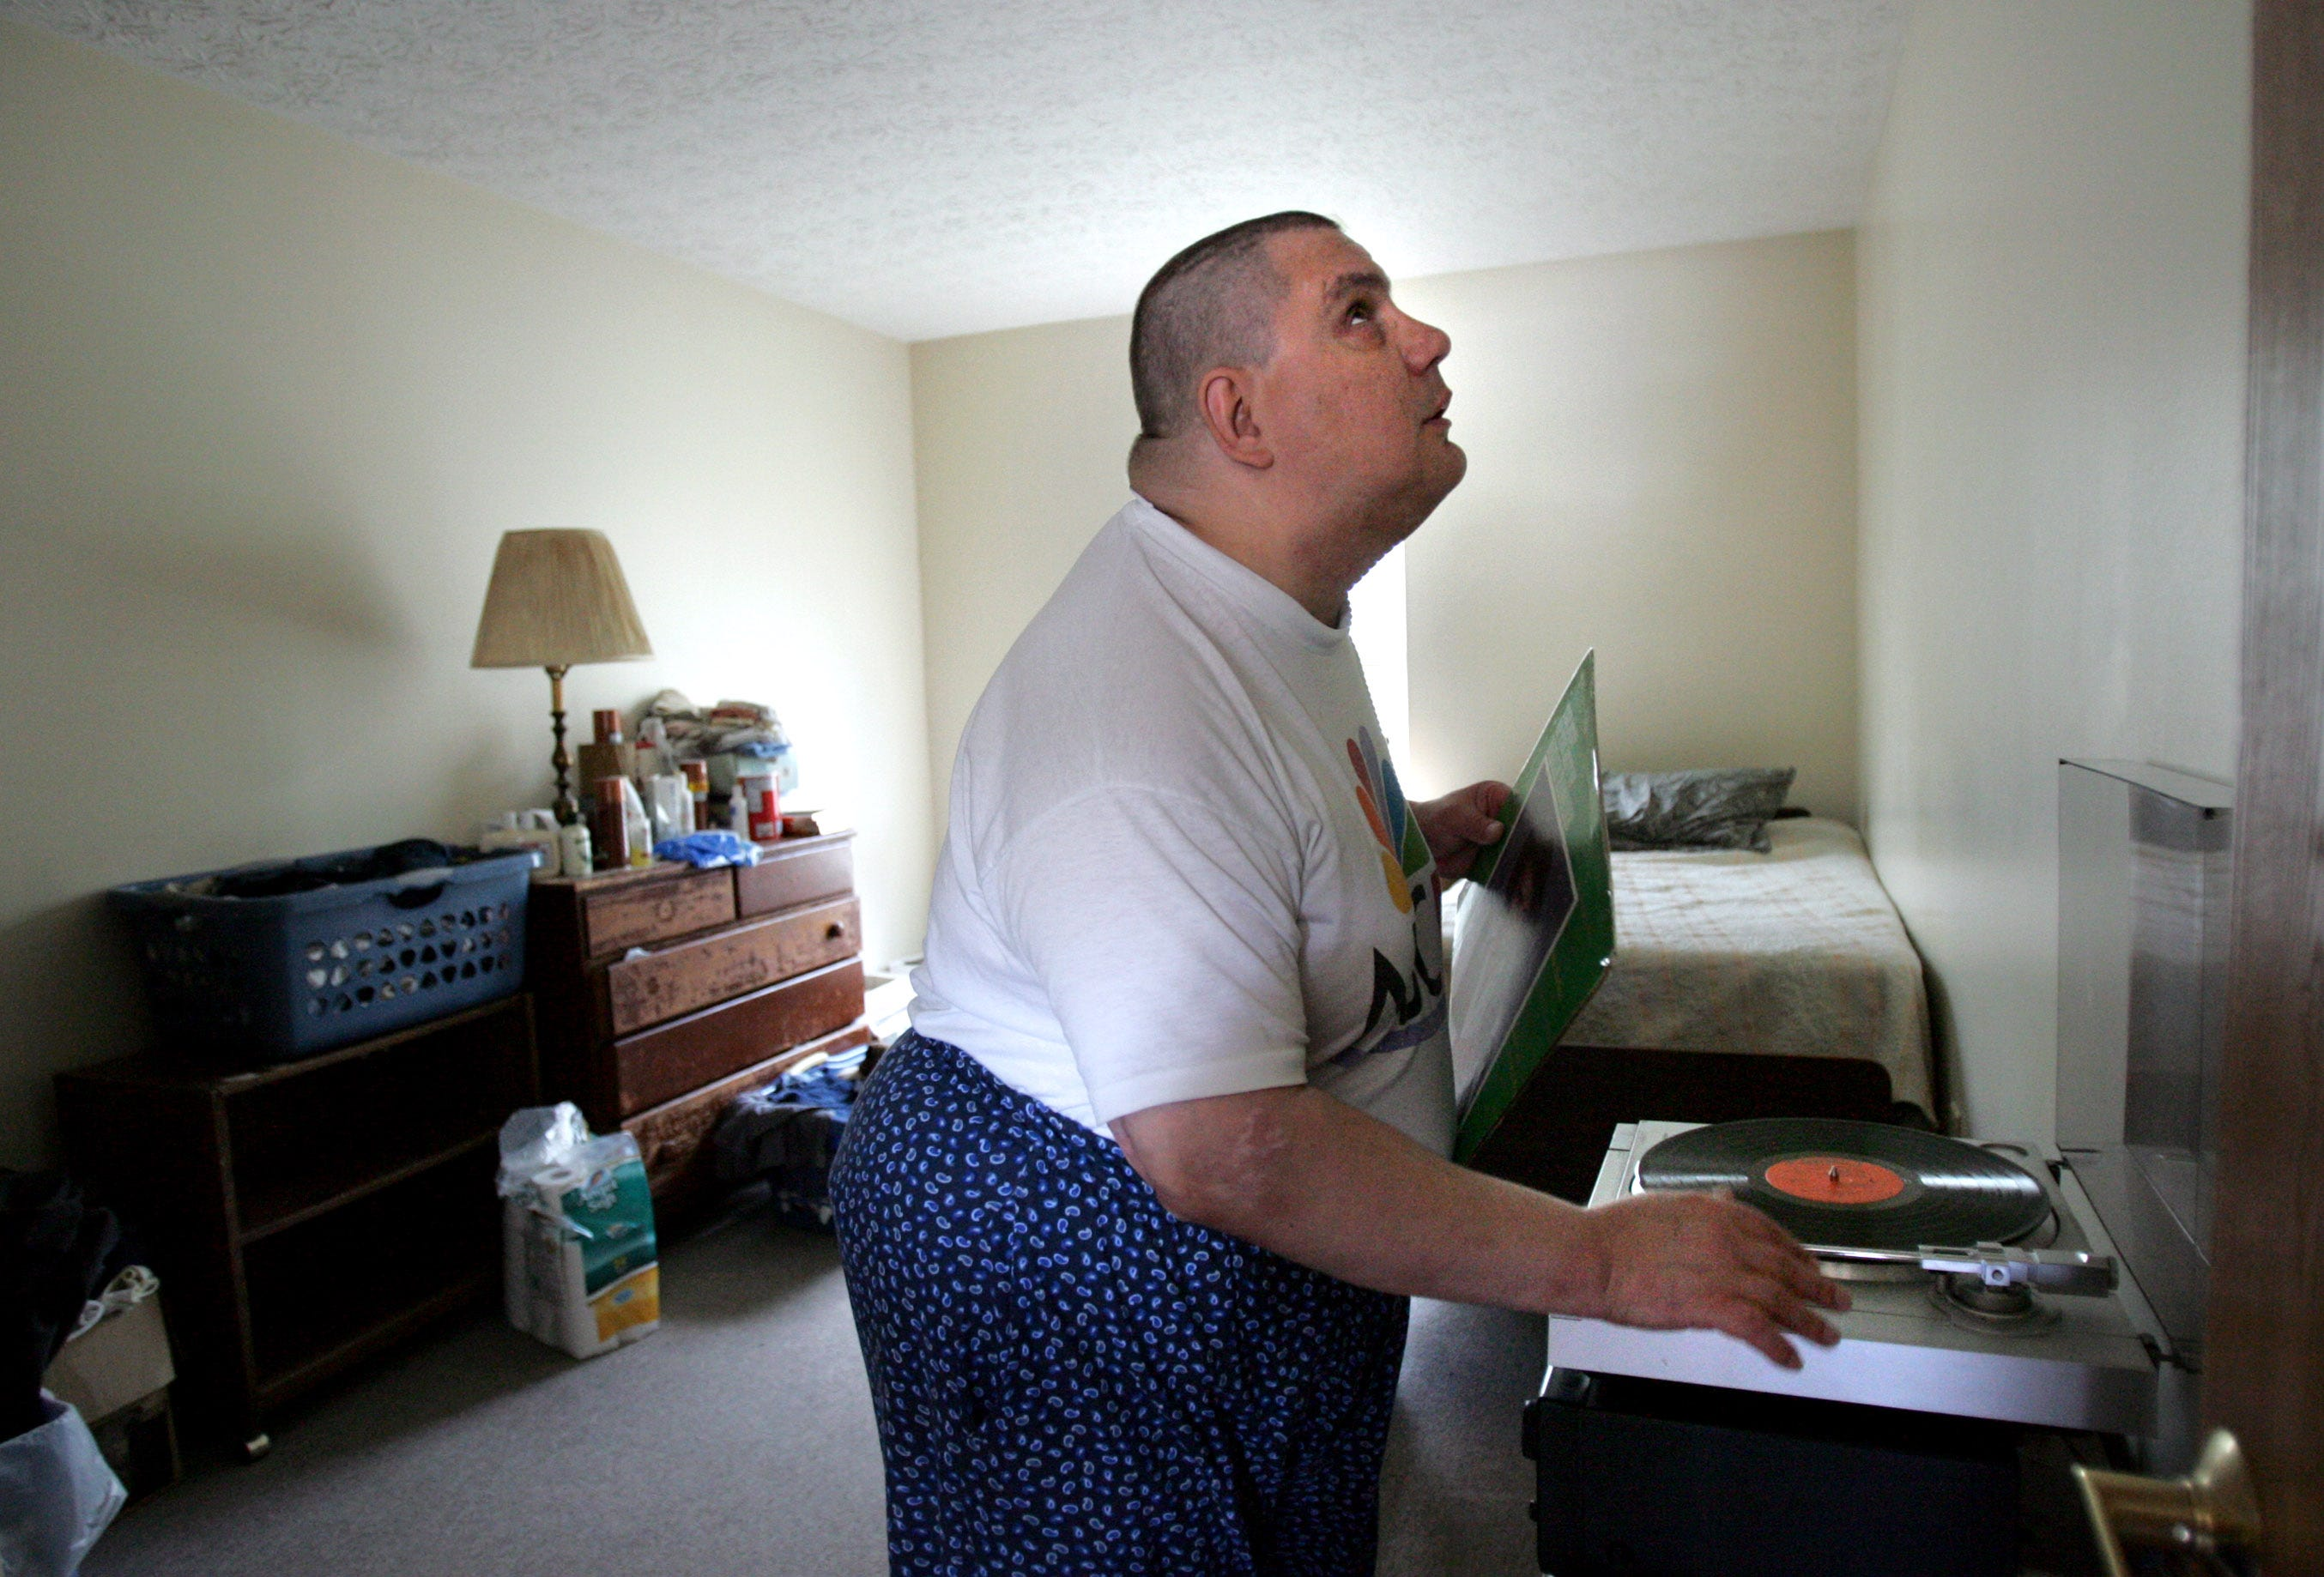 In Columbus, Ohio, officials lead an effort to build safe housing for those with mental illness. In this photo from 2006, Jim Kline — who is blind, has schizophrenia and suffers from a variety of physical ailments — was able to live on his own through the Community Housing Network. He particularly liked the ability to play his own music.